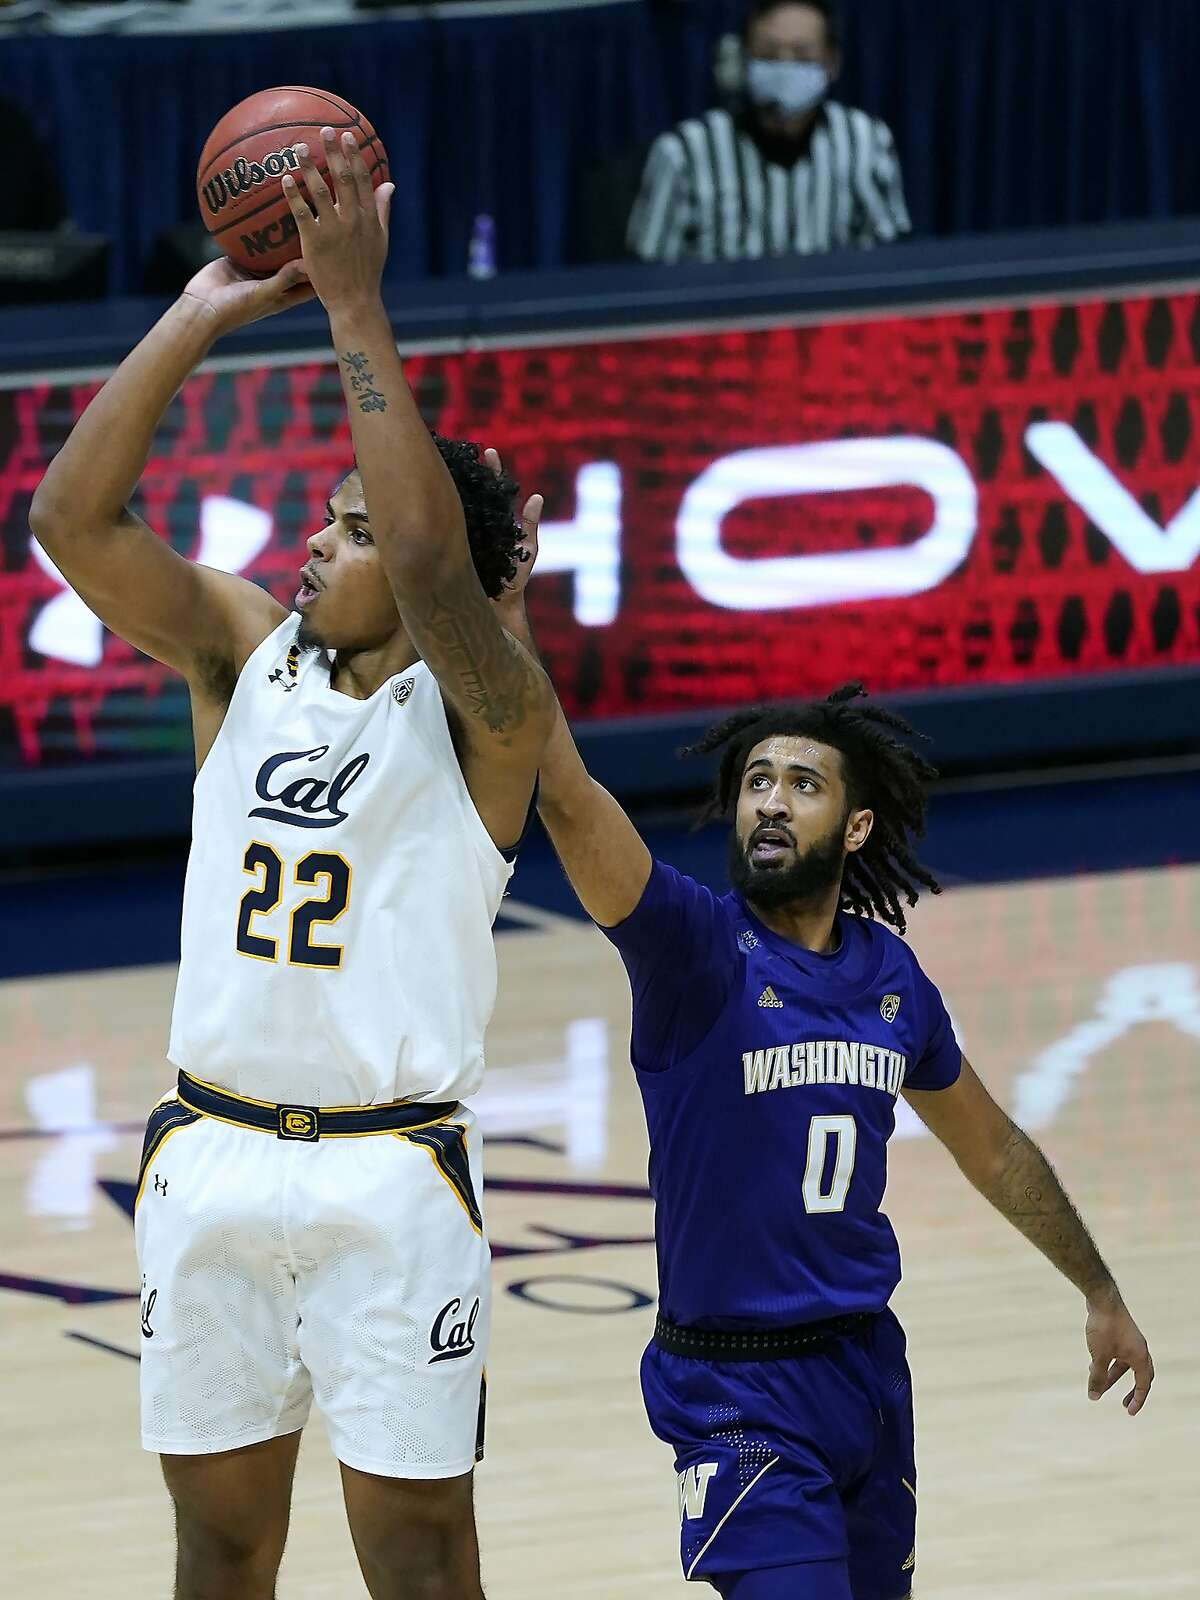 Cal forward Andre Kelly takes a shot in front of Washington guard Marcus Tsohonis during the first half.